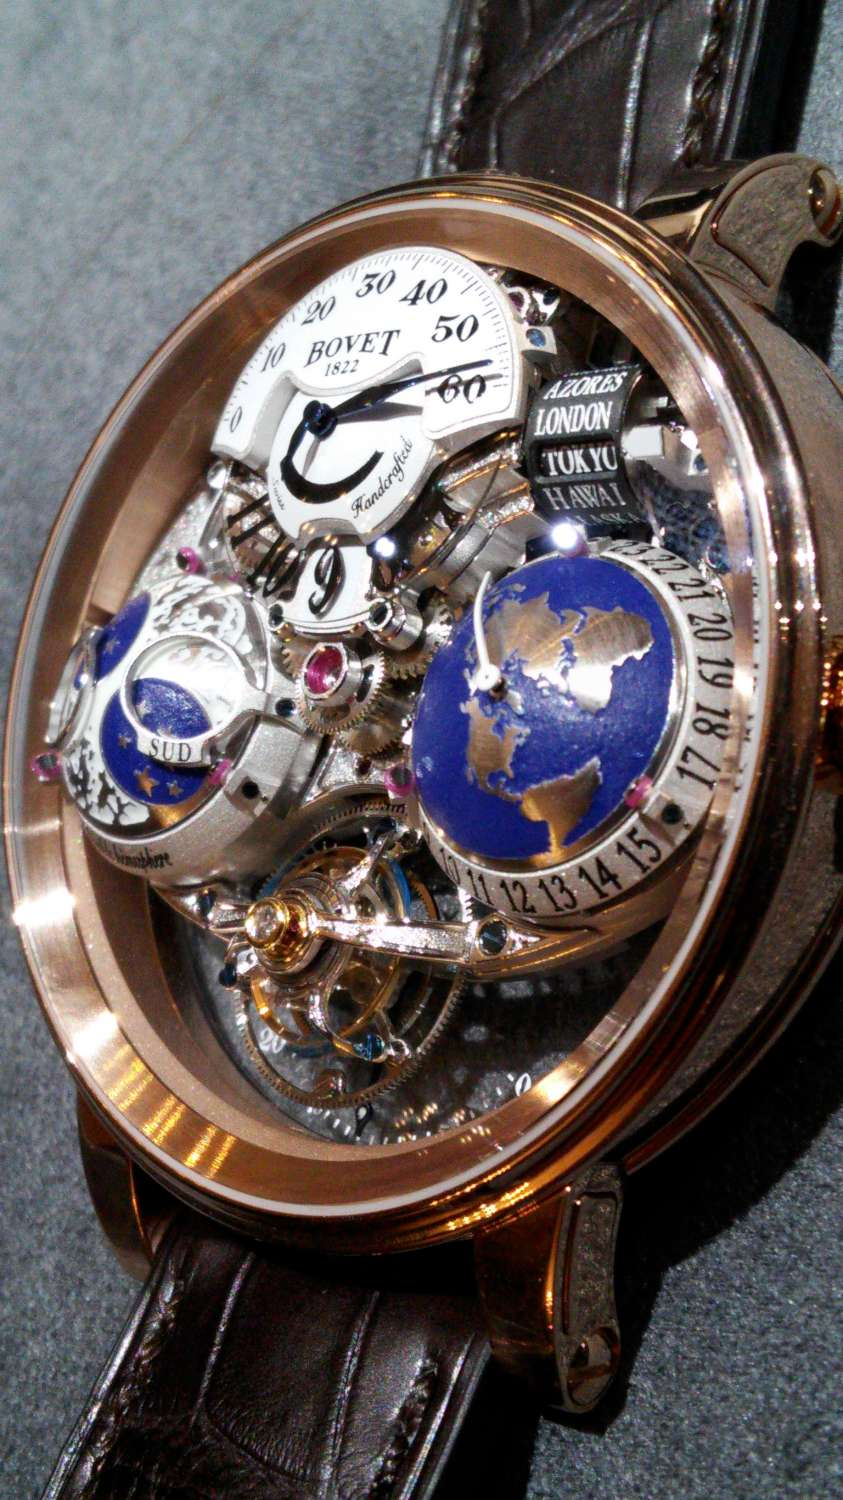 timepiece watches bovet dimier cital original r recital gallery